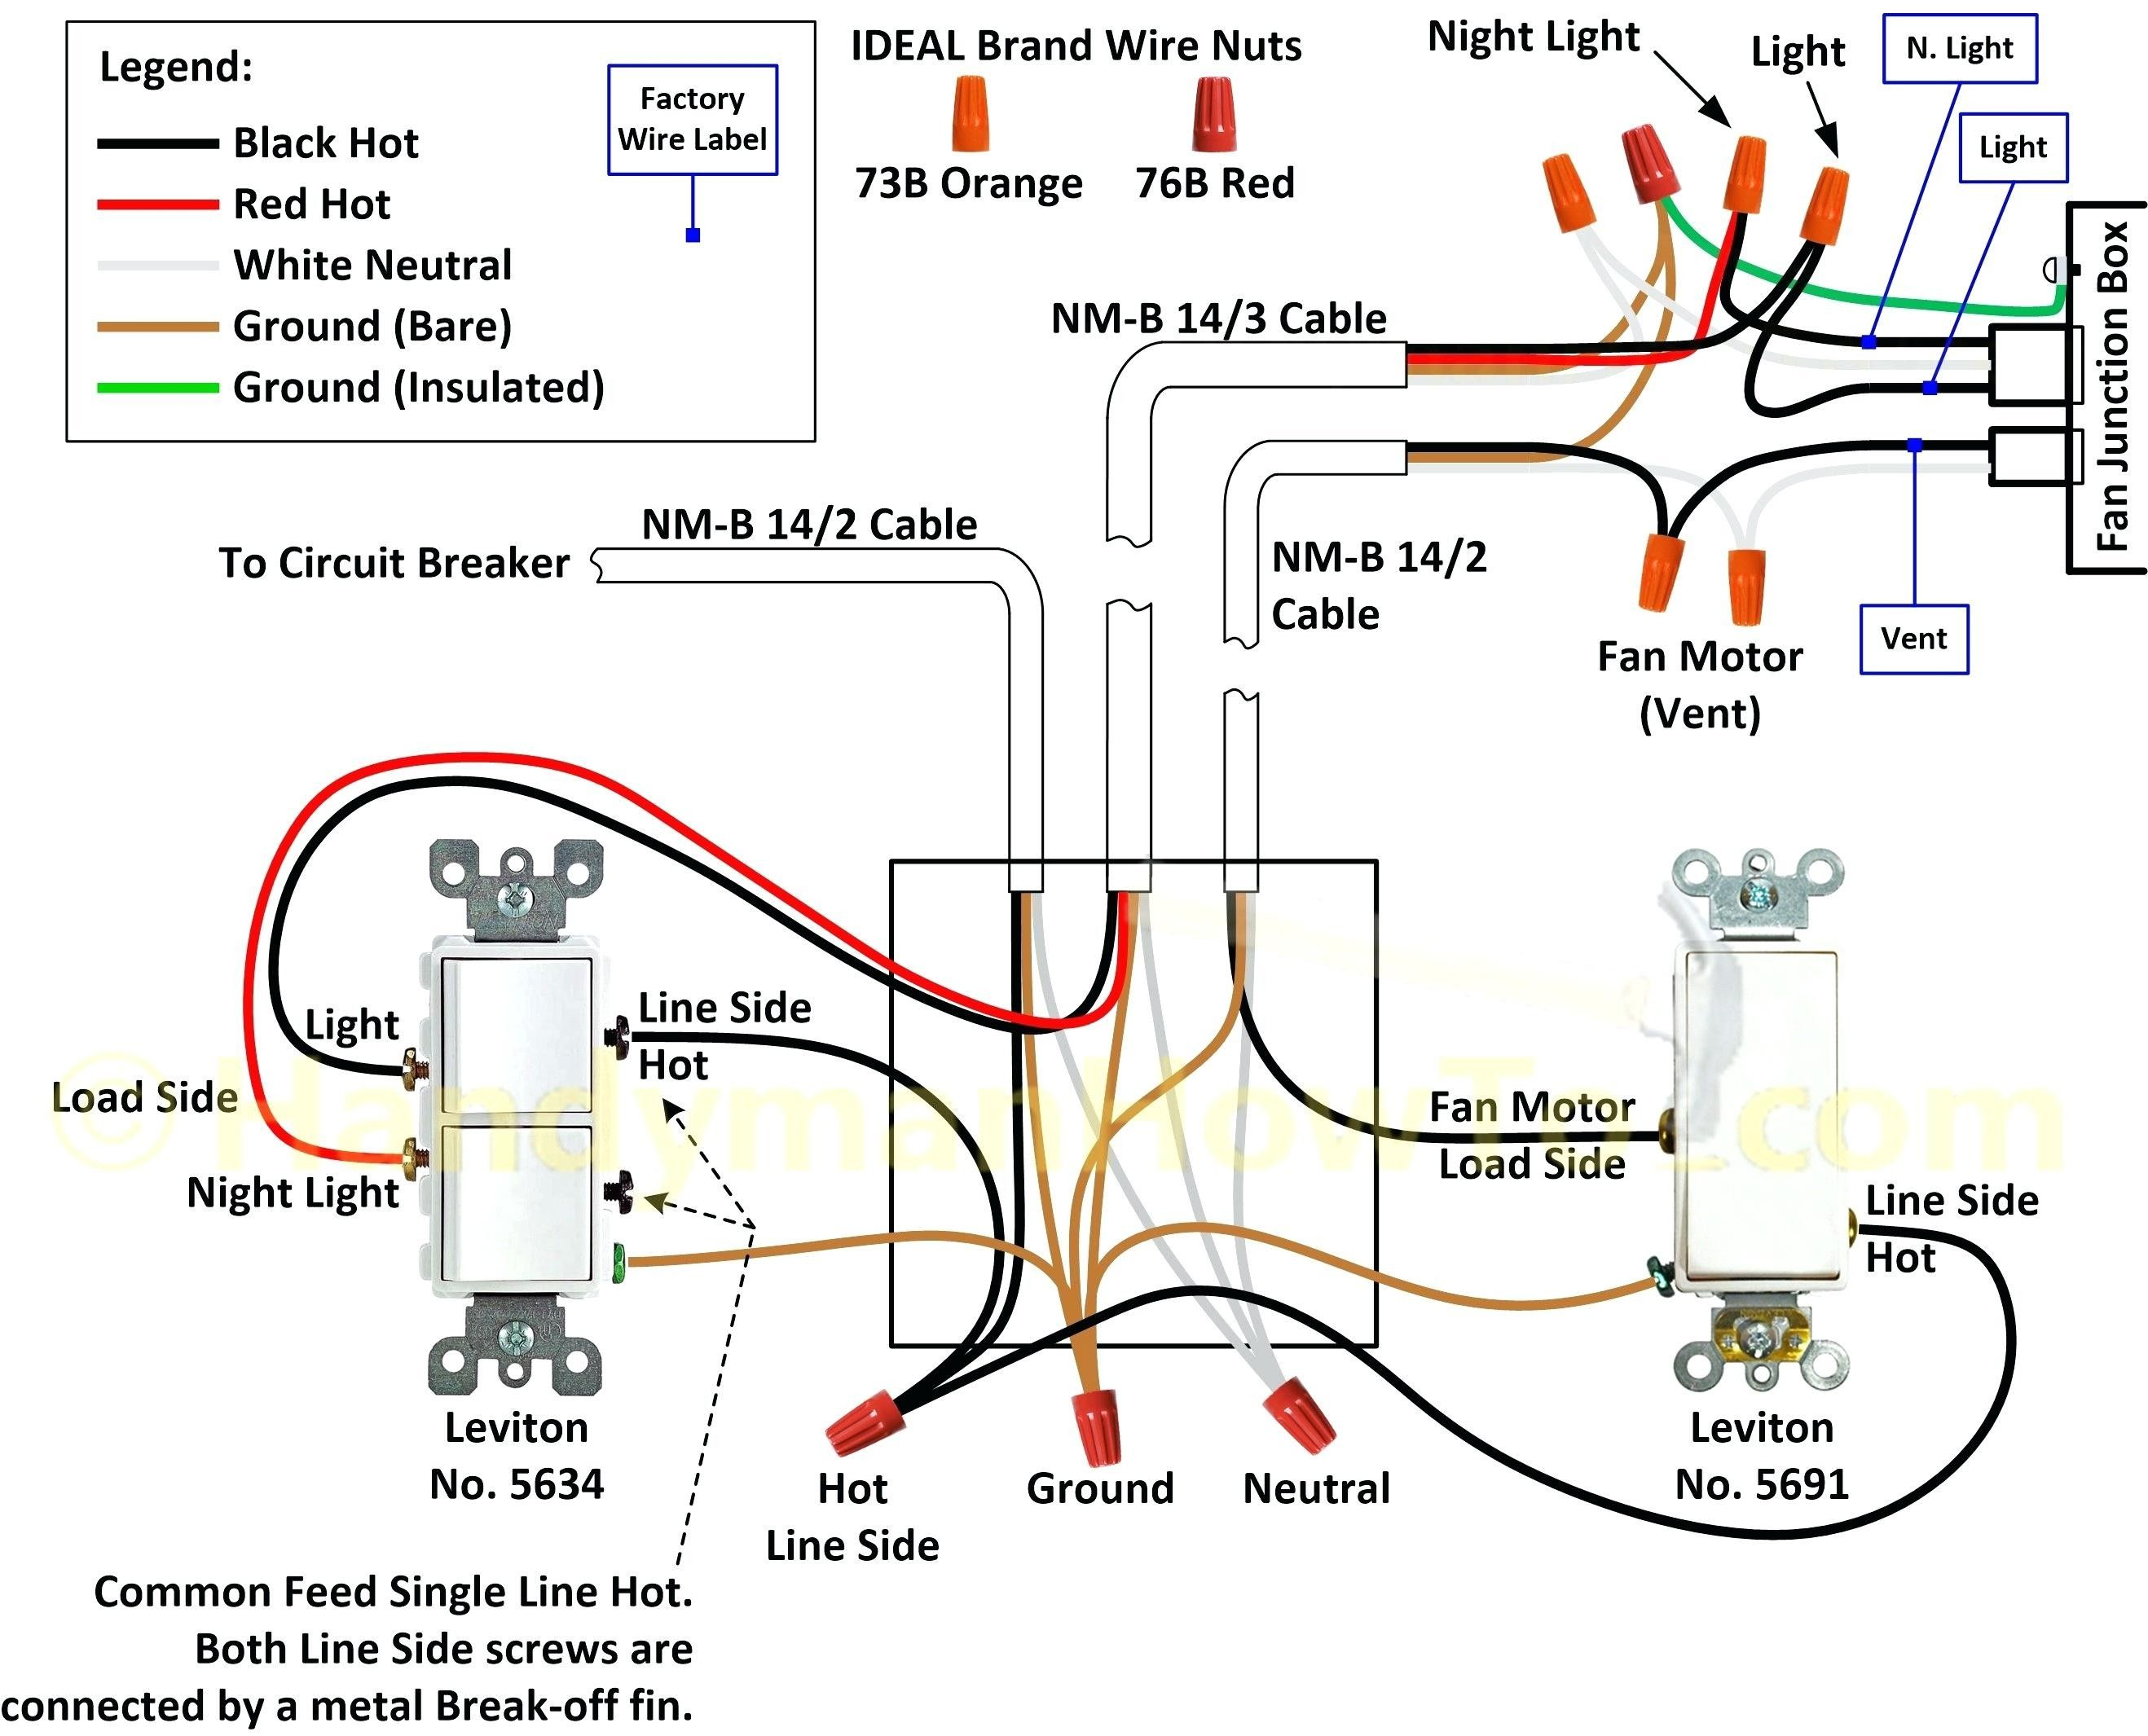 Dimmable Ballast Wiring Diagram Light Switch Wiring Ceiling Fan Wiring Ceiling Fan Switch